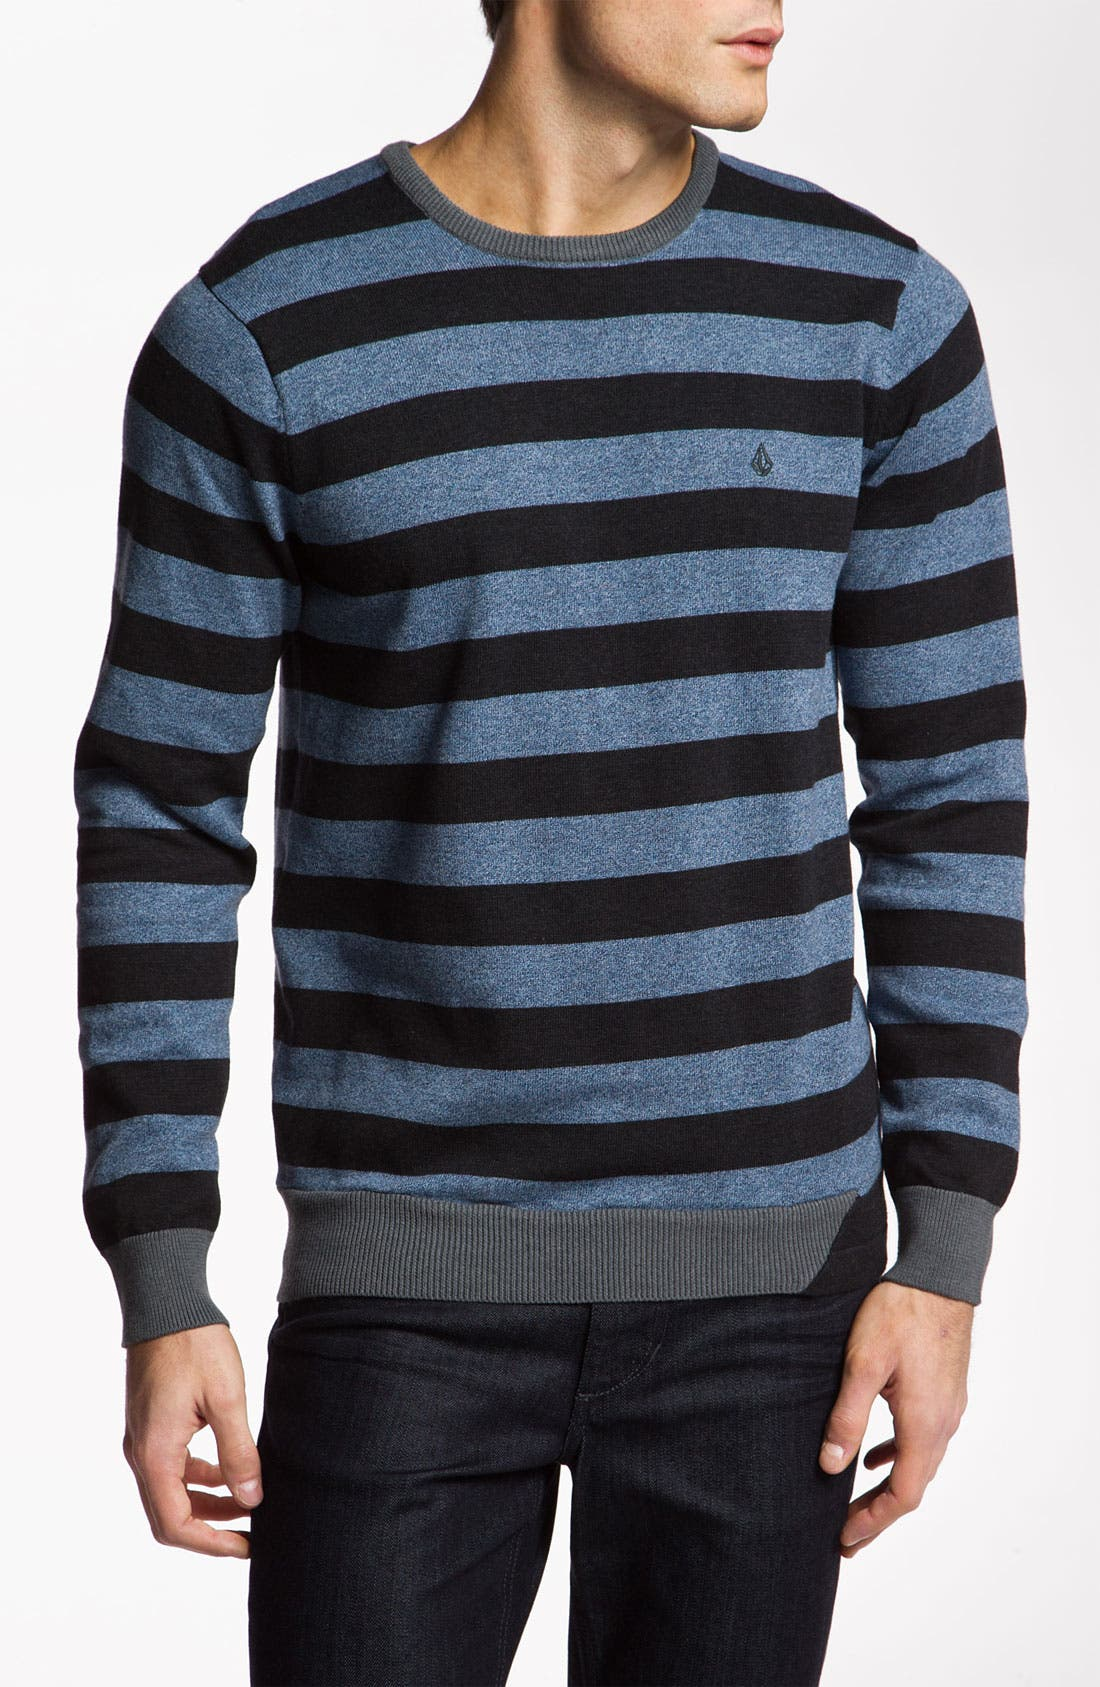 Alternate Image 1 Selected - Volcom 'Other Circle' Crewneck Sweater